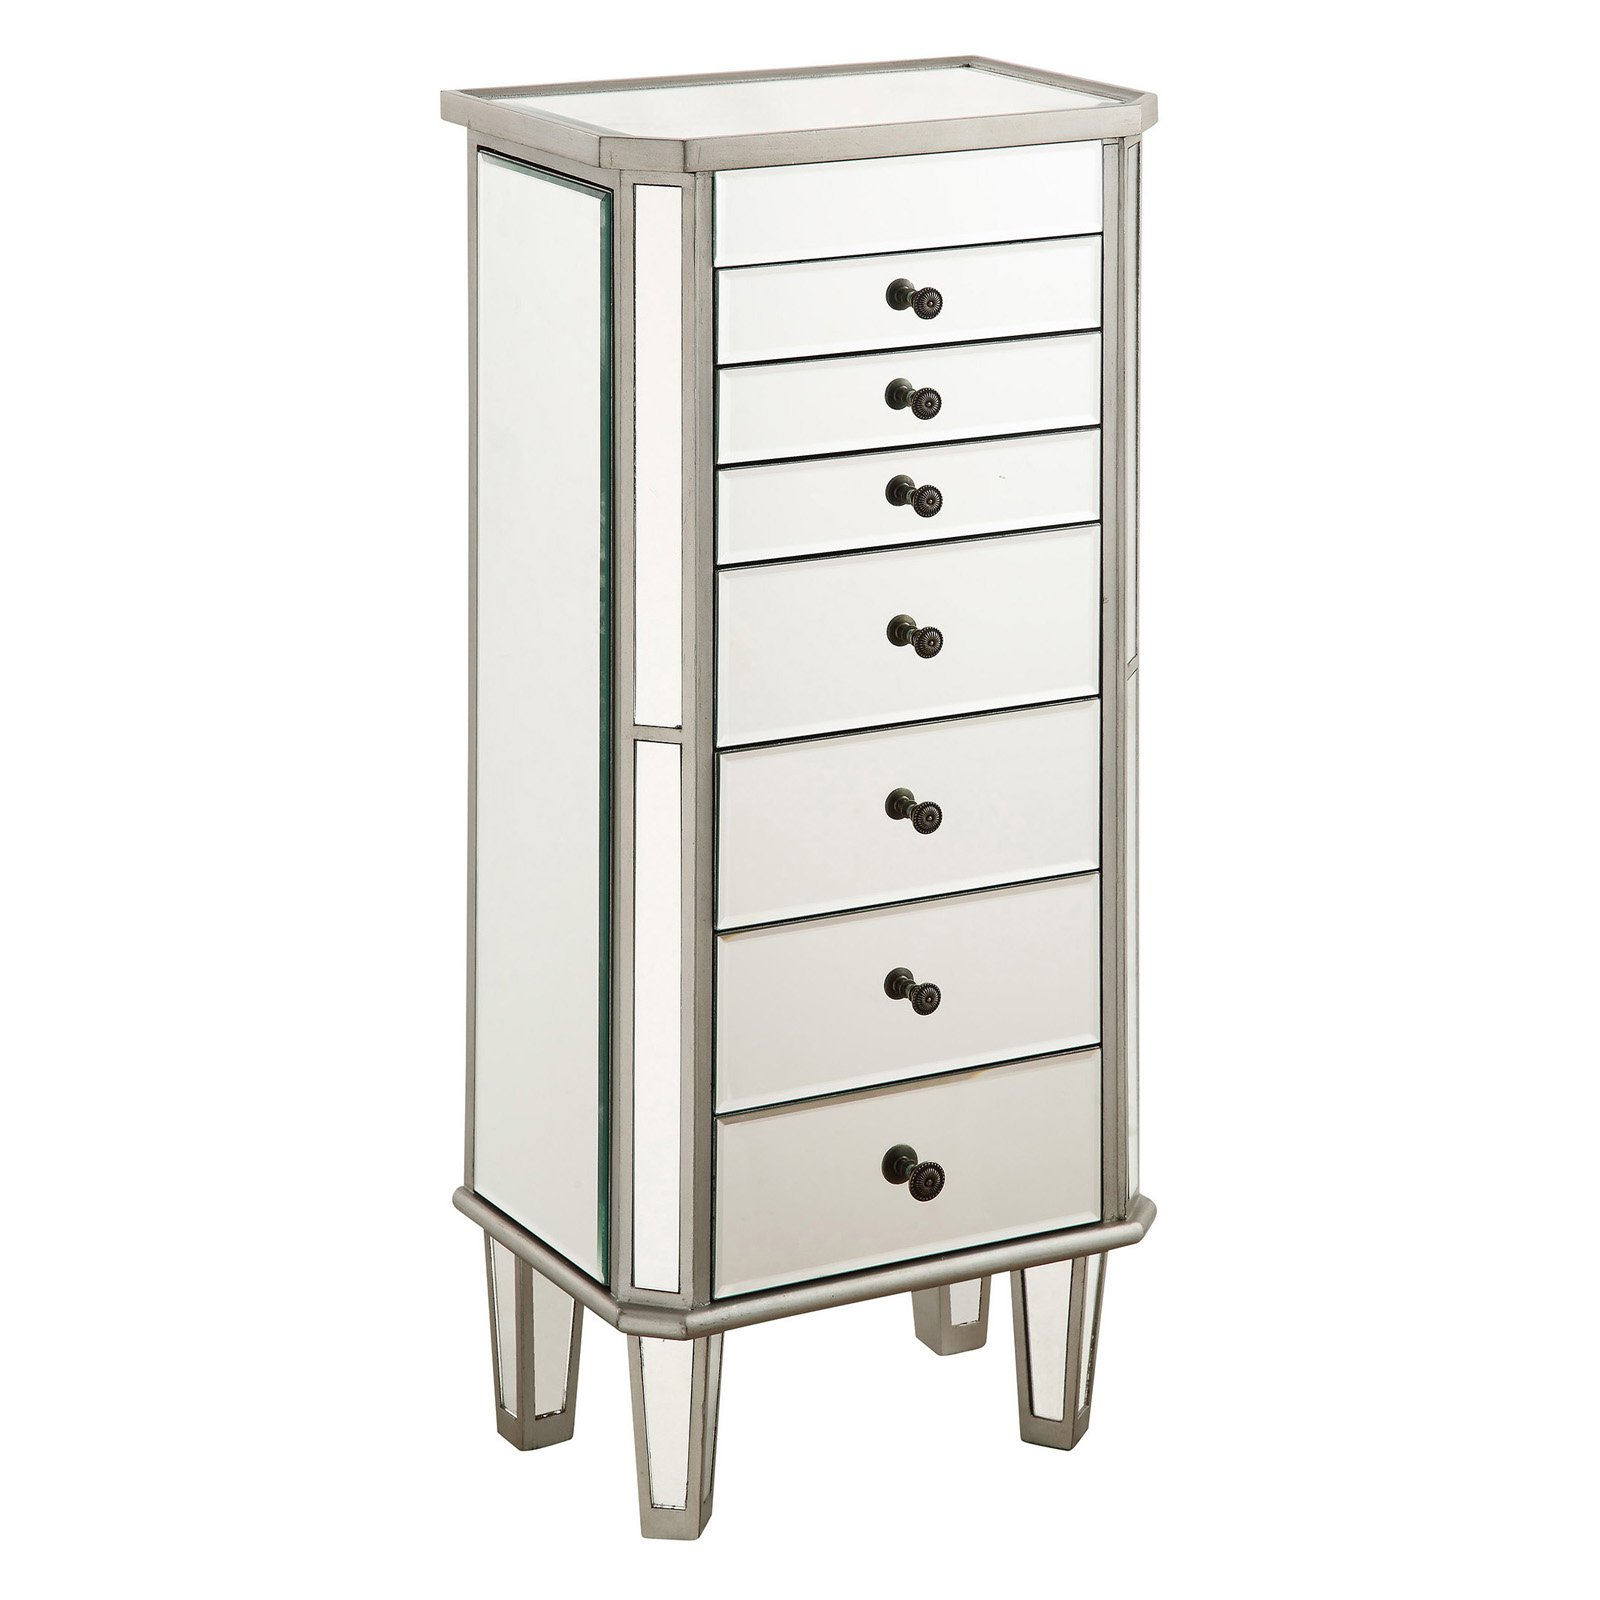 Great Elegant Lighting Danville 7 Drawer Mirrored Jewelry Armoire In Silver